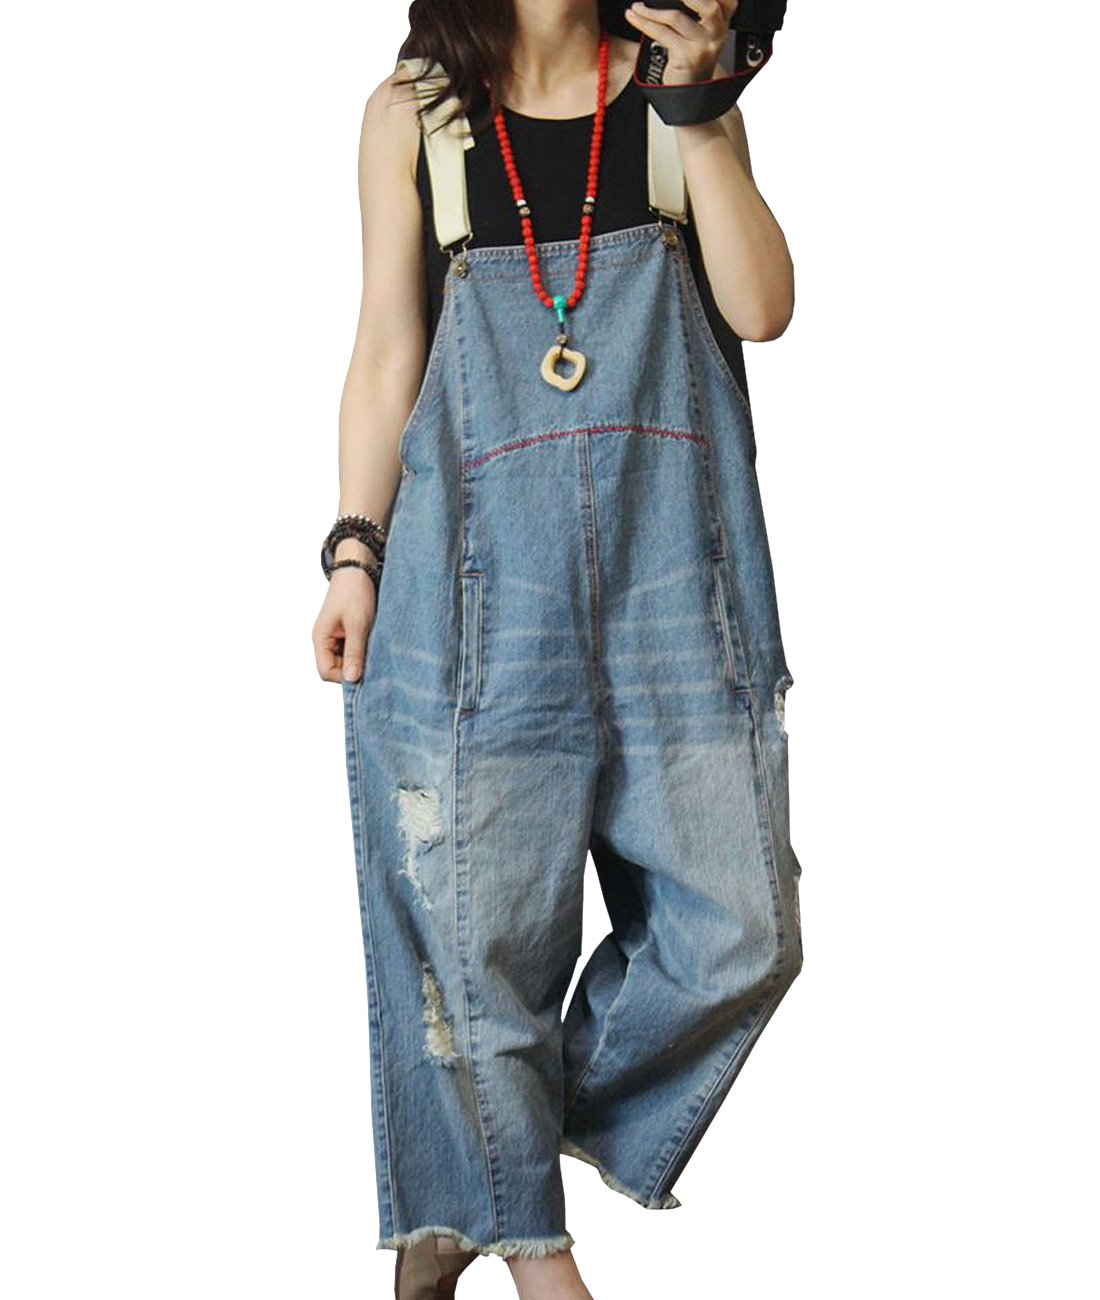 YESNO P49 Women Jeans Cropped Pants Overalls Jumpsuits 100% Cotton Distressed Ripped Fringed Pocket